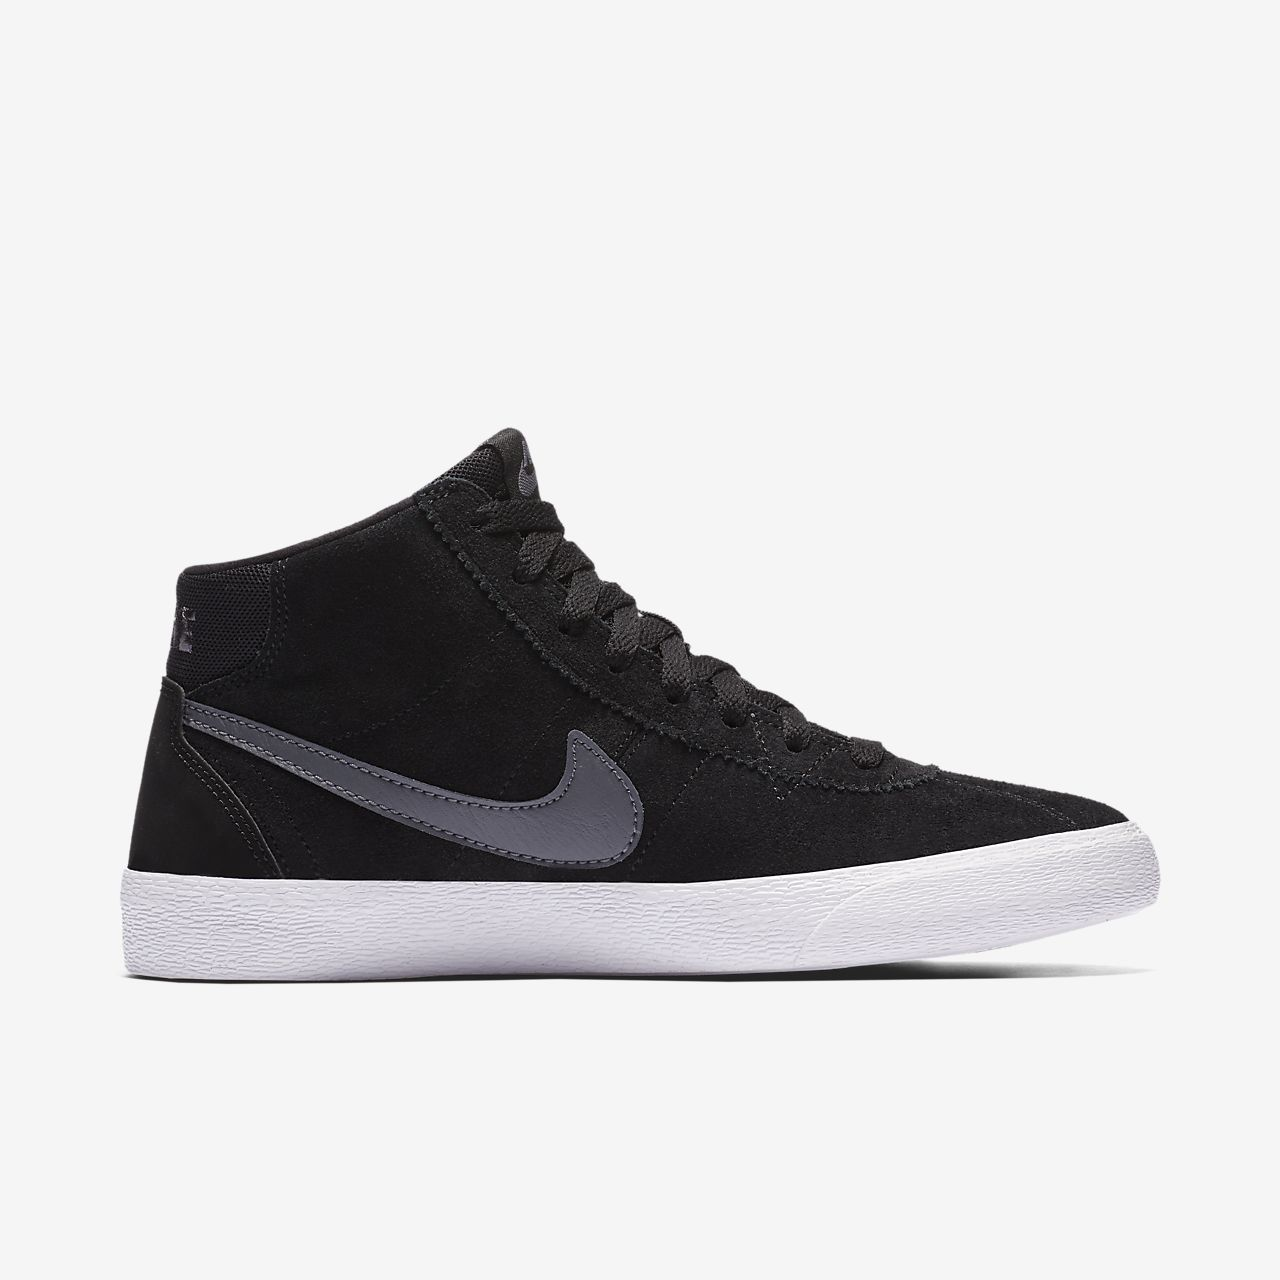 size 40 4399d d298b ... Nike SB Bruin High Women s Skateboarding Shoe